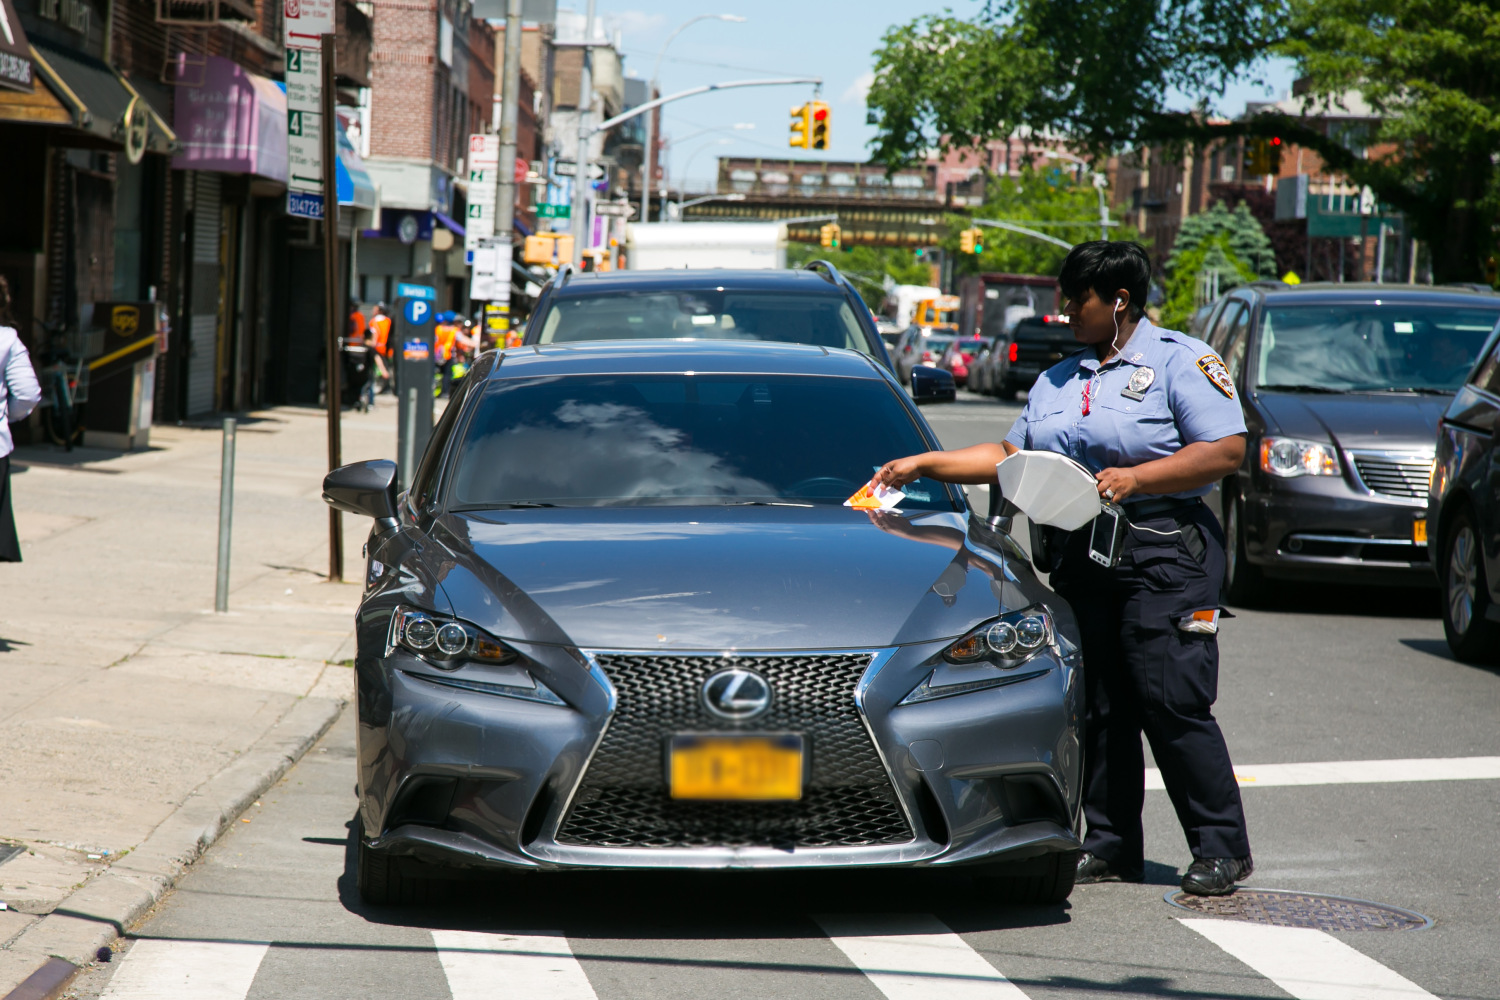 progressive fines can change the way parking tickets work in NYC